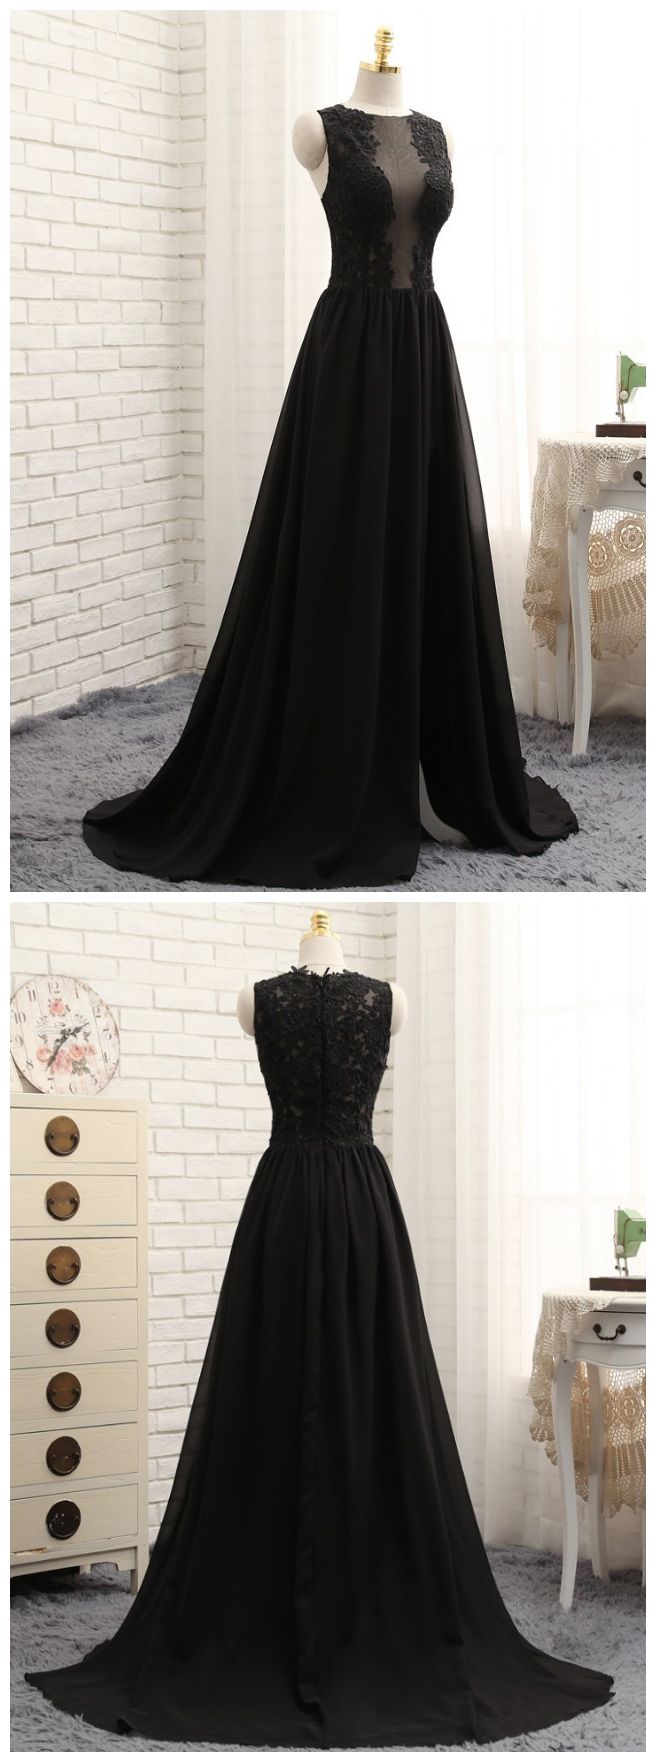 Prom Dresses, A-line Black Chiffon Appliques Lace Sexy Long Prom Gown ,Evening Dresses, Evening Gown